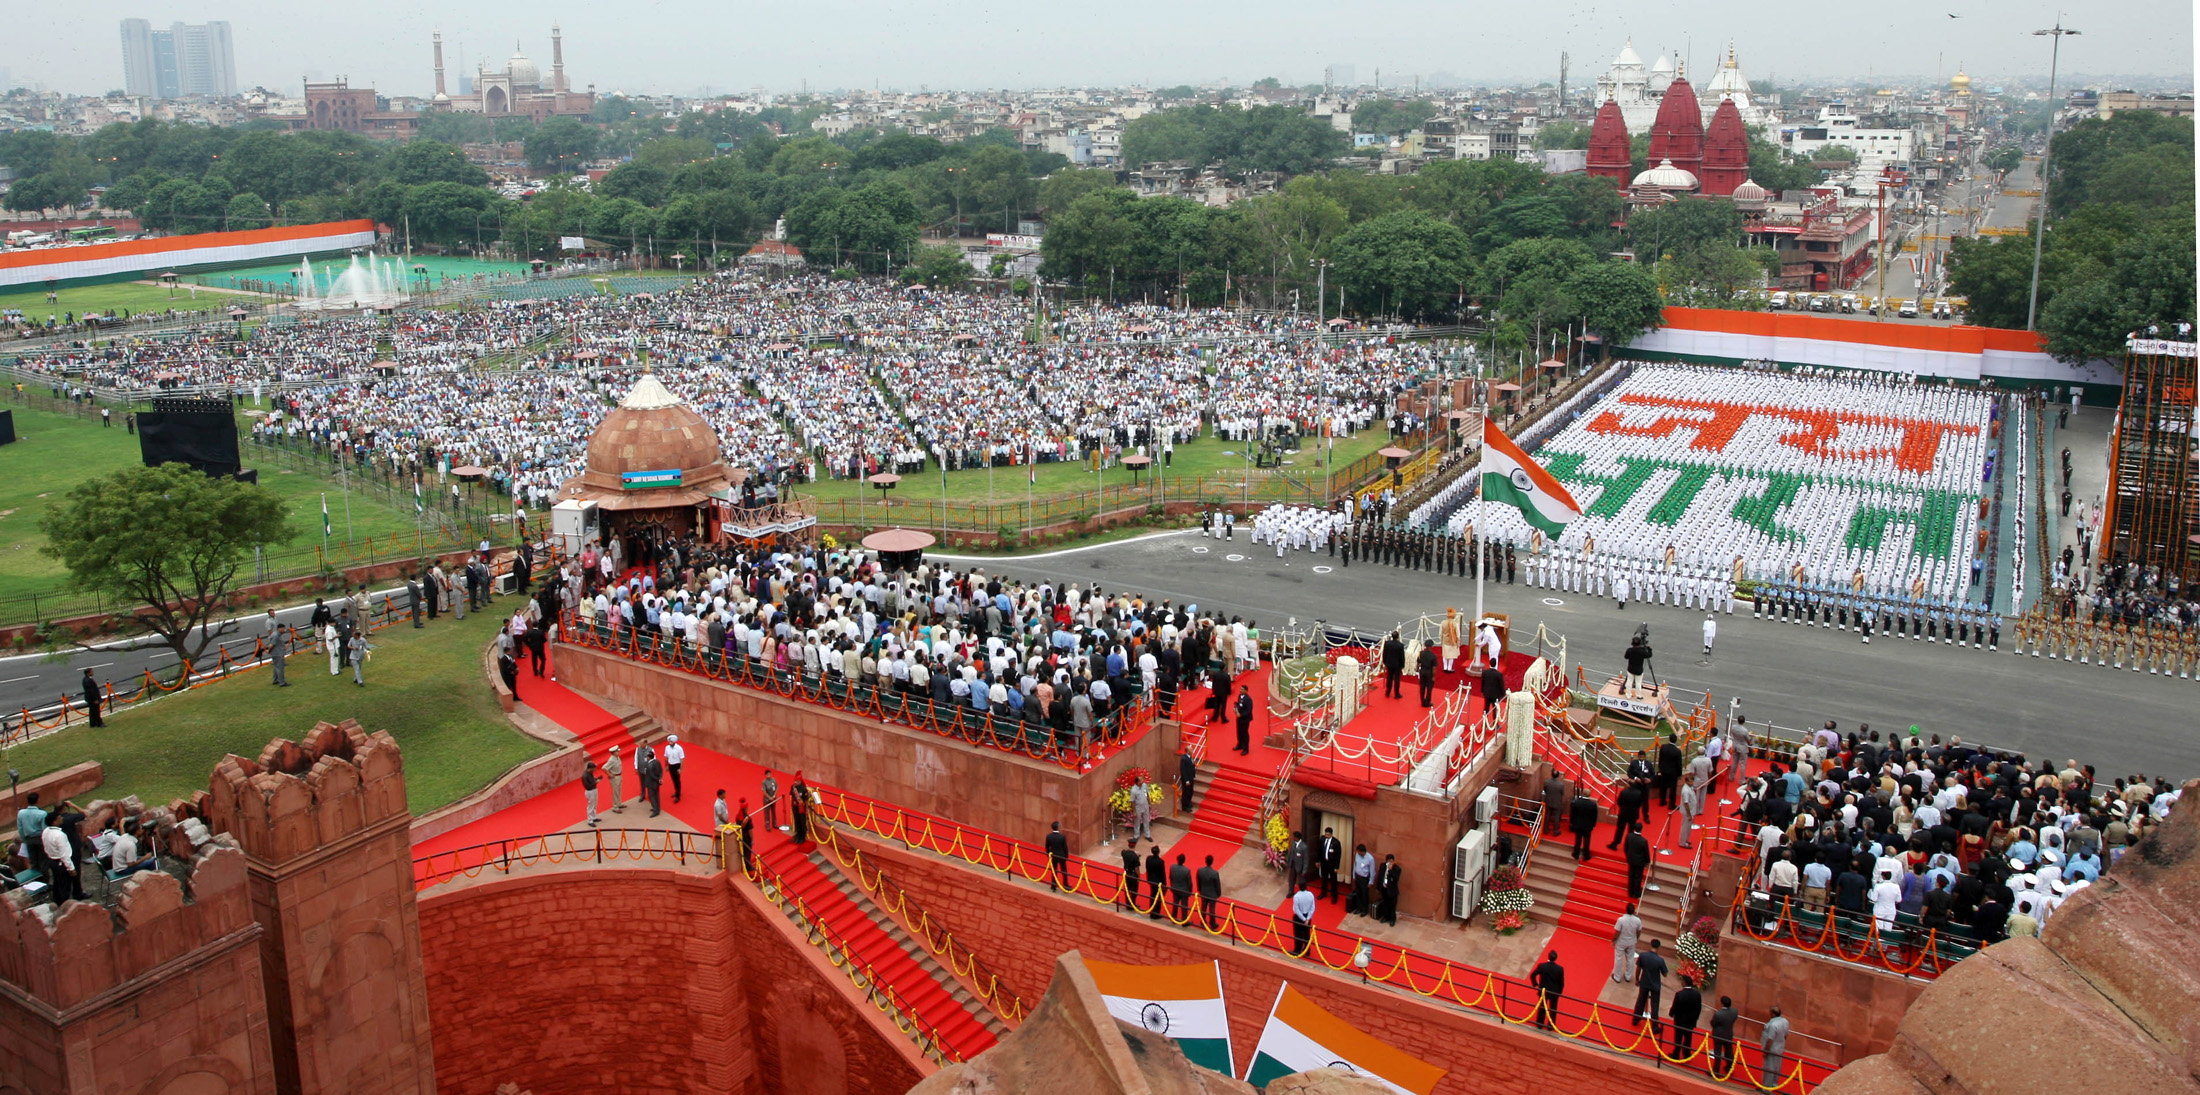 A panoramic view from the Minarets of Red Fort, while the Prime Minister, Shri Narendra Modi addressing the Nation from ramparts of the fort, on the occasion of 69th Independence Day, in Delhi on August 15, 2015.